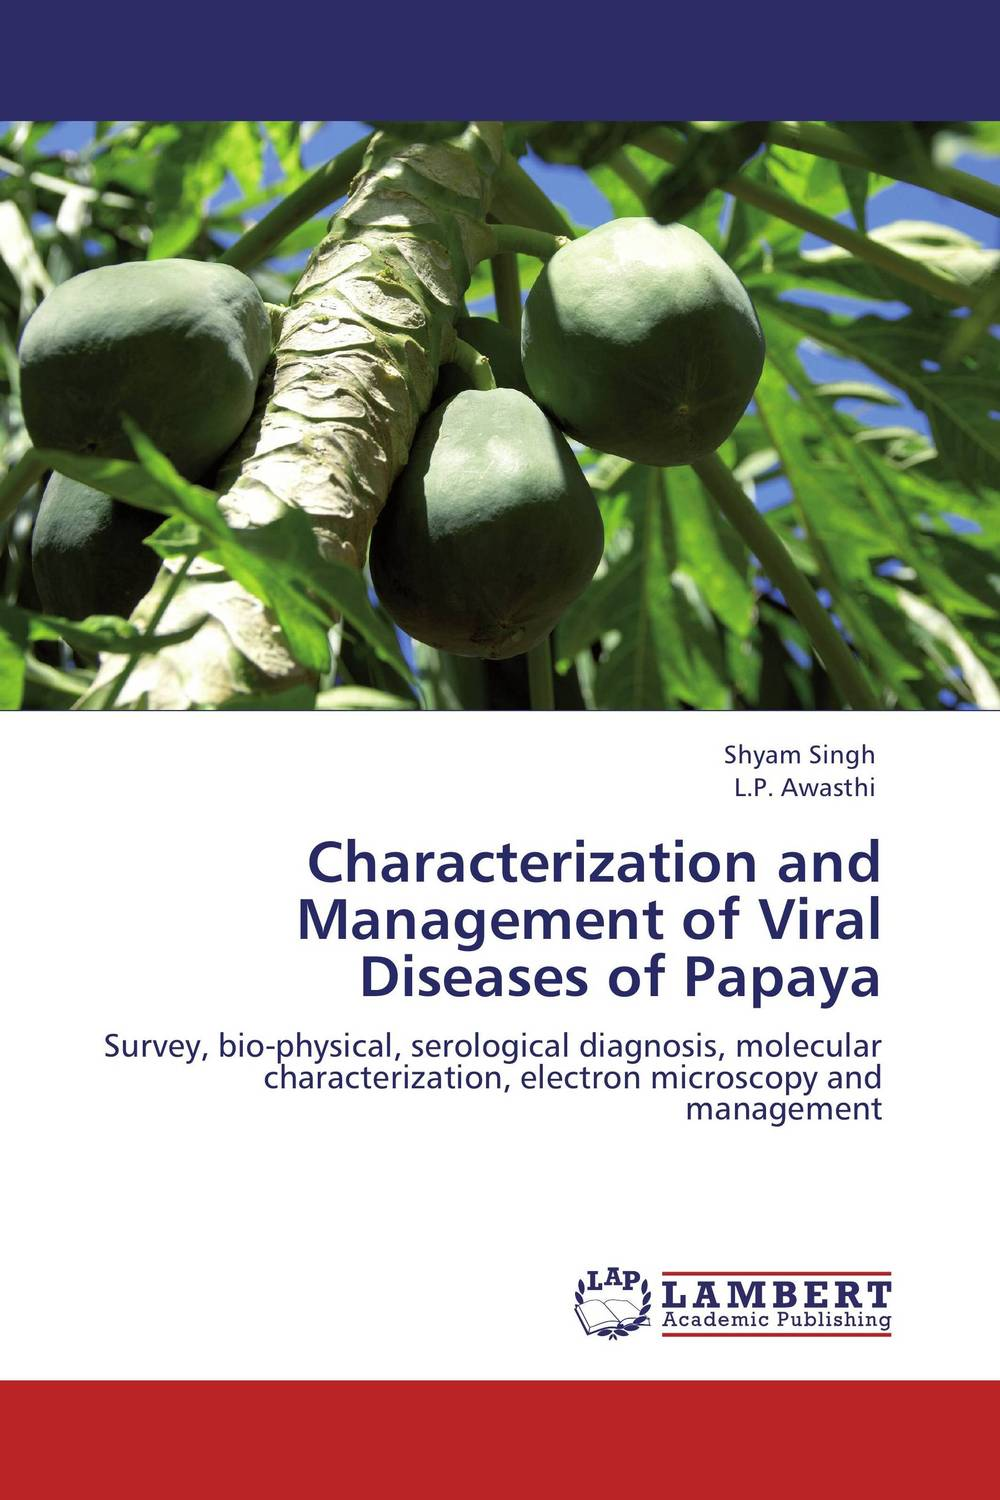 Characterization and Management of Viral Diseases of Papaya tapan kumar dutta and parimal roychoudhury diagnosis and characterization of bacterial pathogens in animal